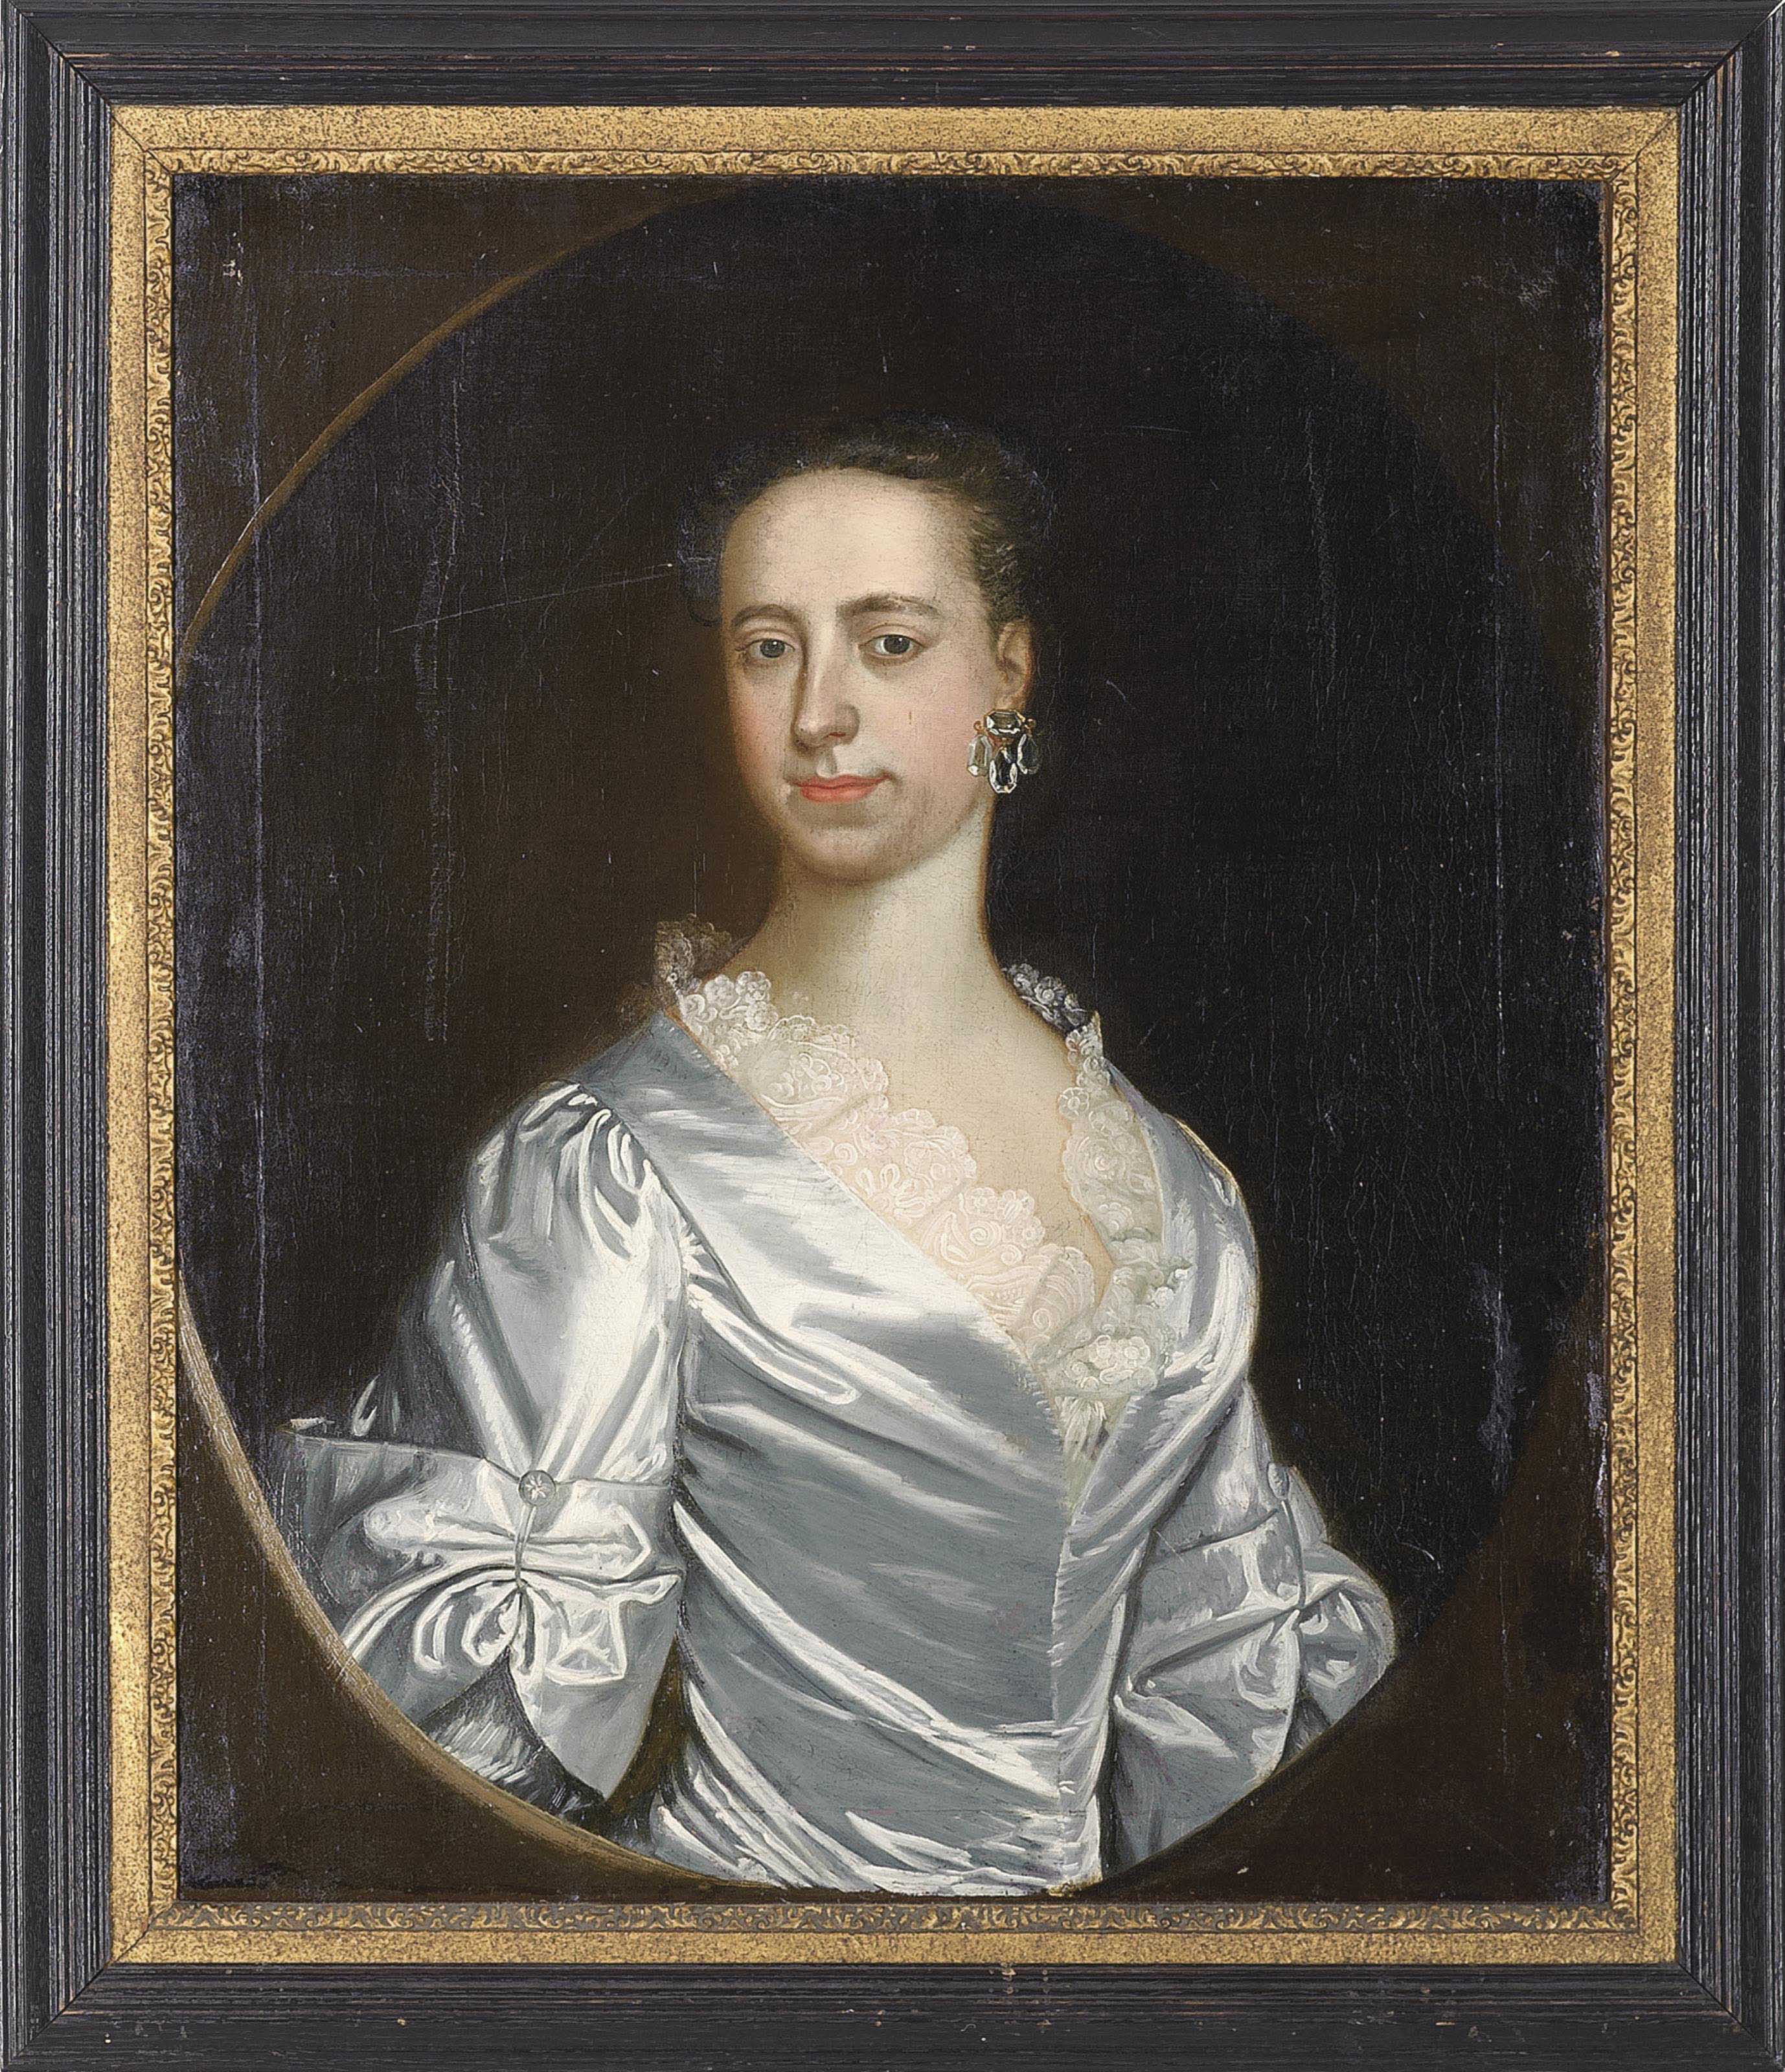 Portrait of a lady, half-length, in a light blue dress, feigned oval